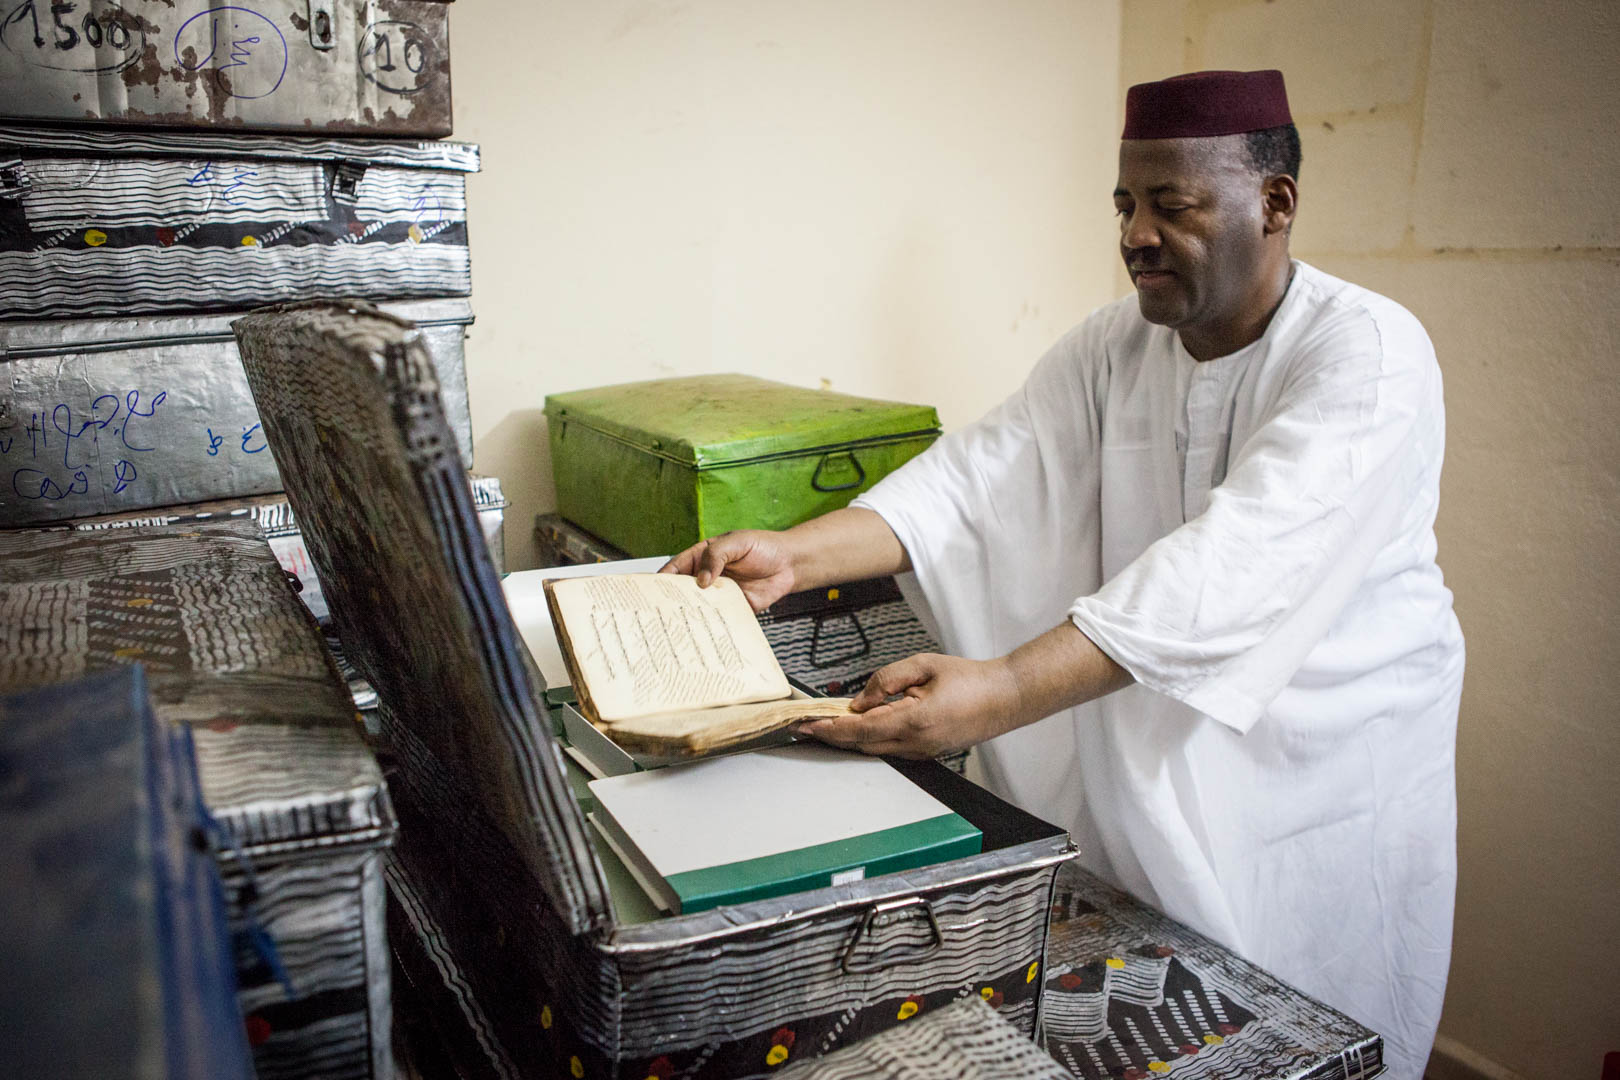 Abdel Kader Haidara, the head of the Haidara private Library in Timbuktu, checks the condition of a manuscript in their storage room in Bamako. He was a major figure behind the exodus that the manuscripts from Timbuktu went through.